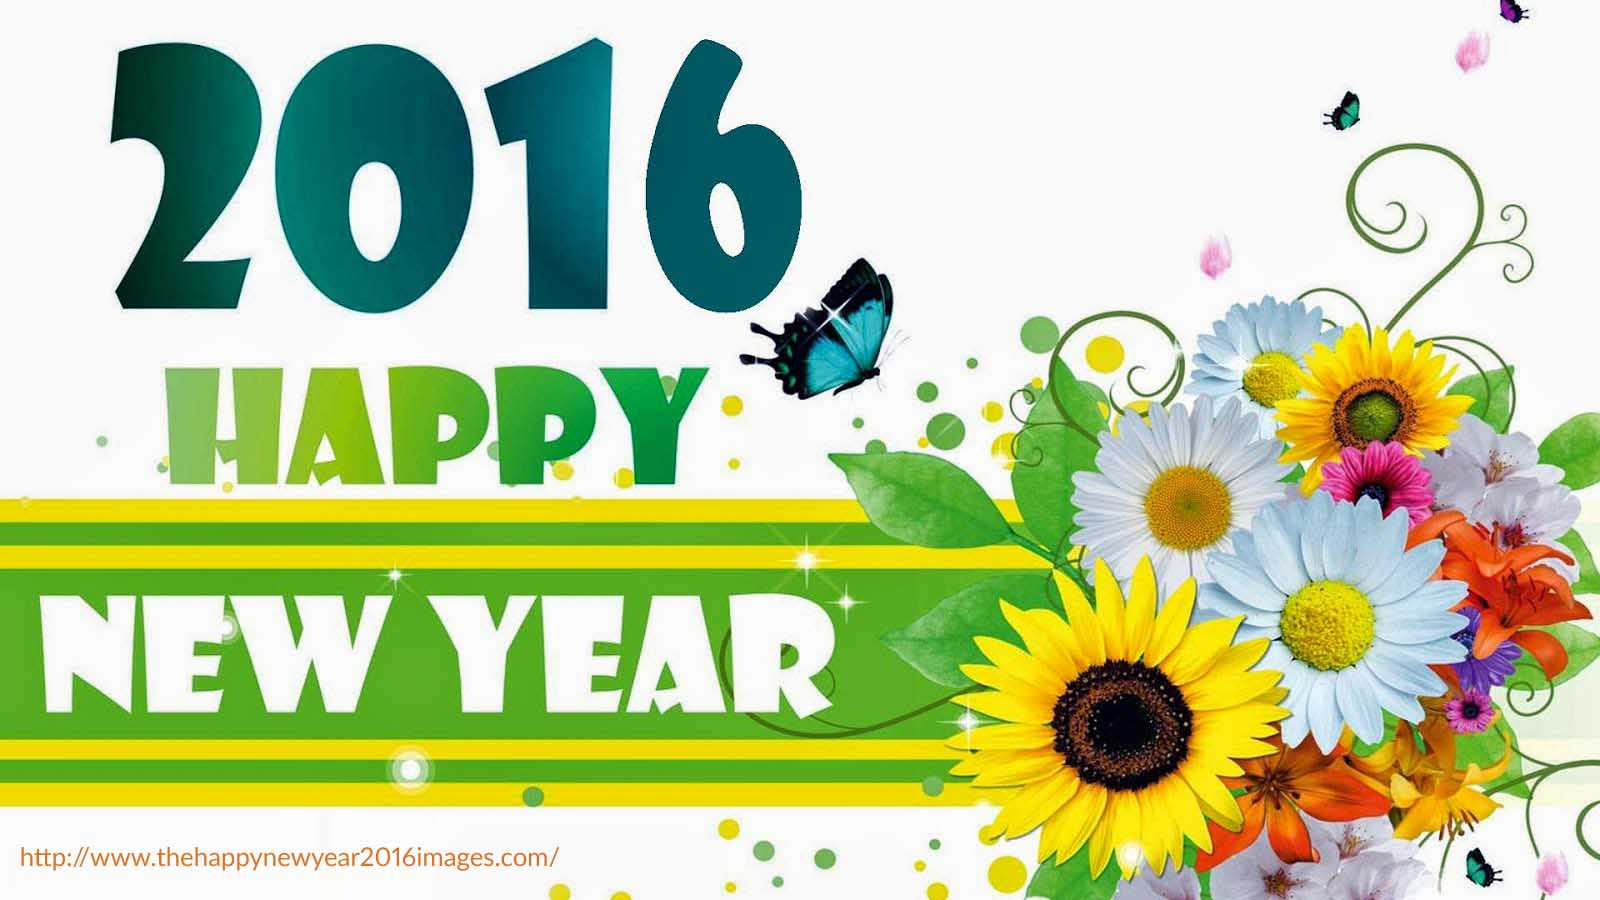 happy new year 2016 images new year 2016 wishes new year 2016 sms 1600x900